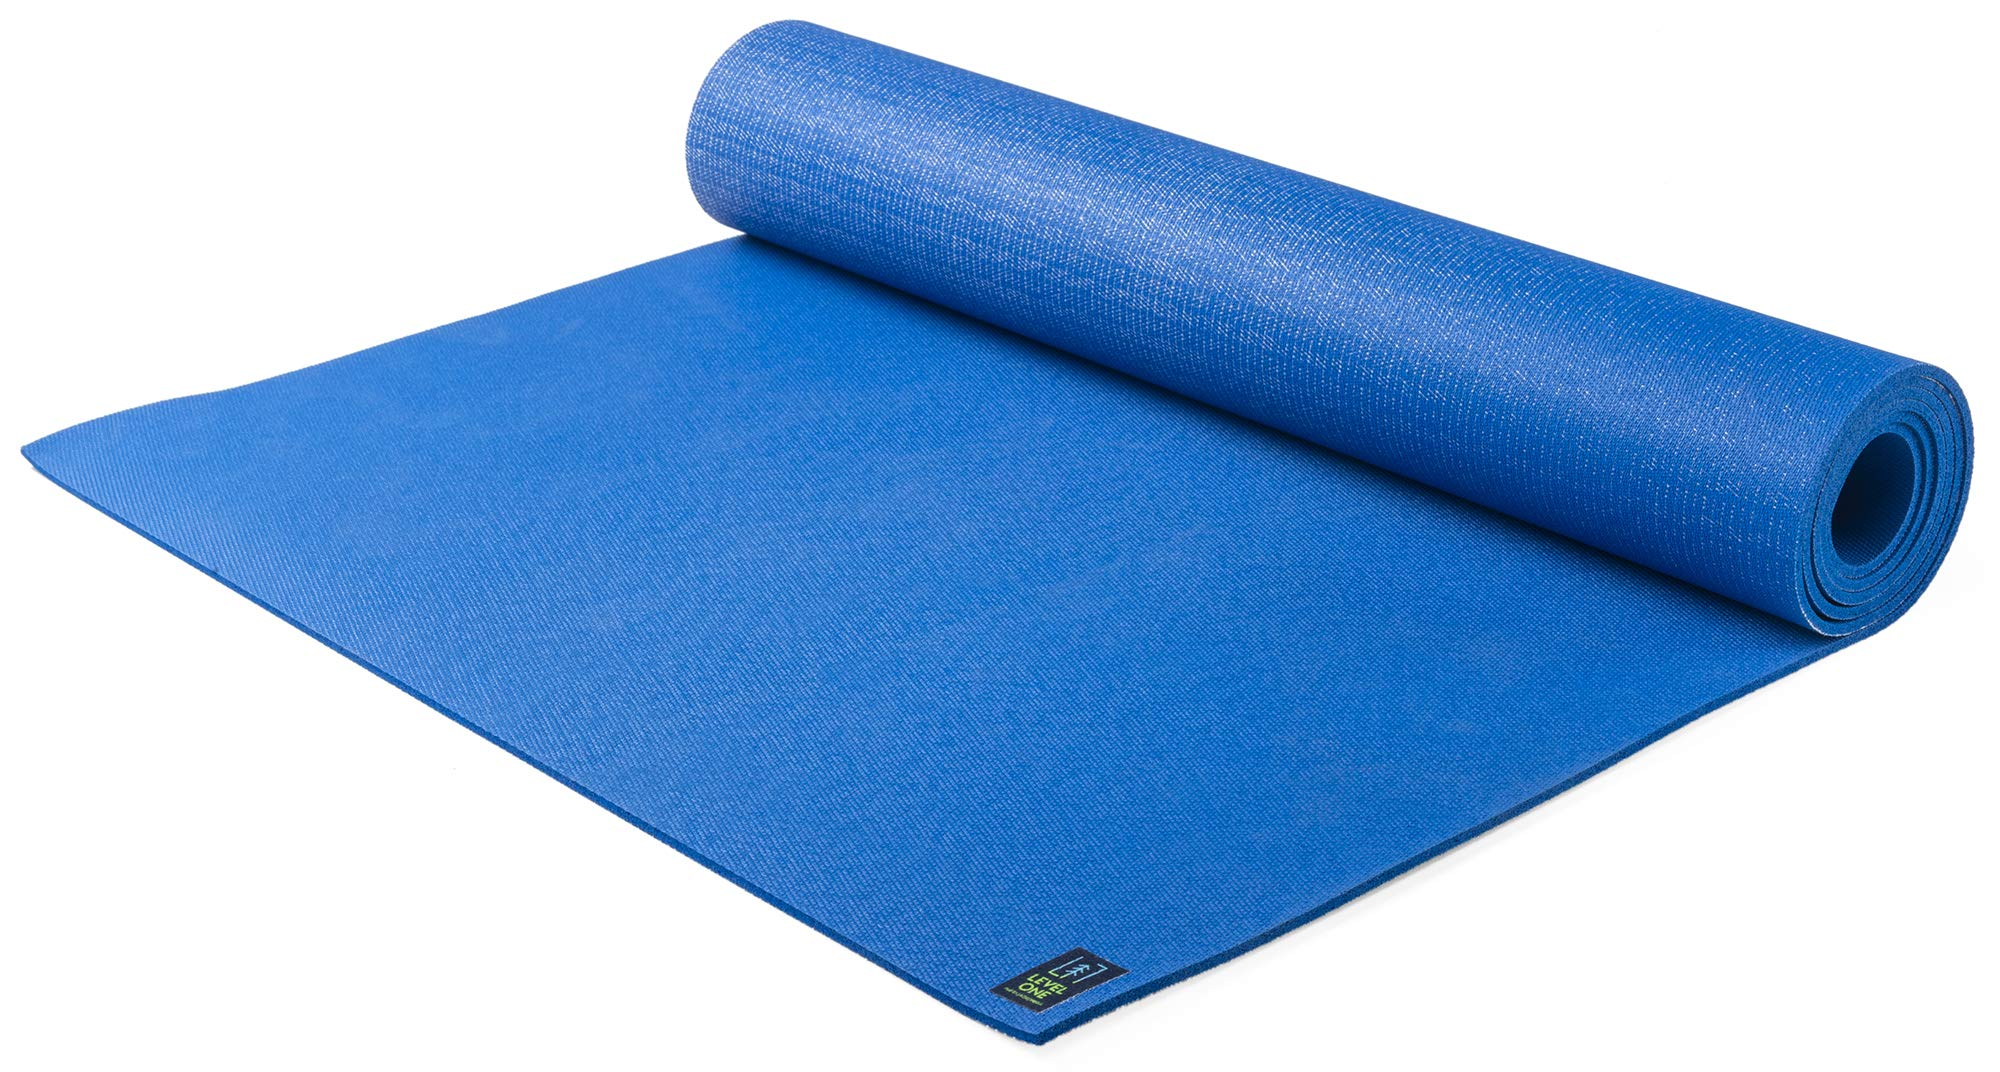 Jade Yoga- Level One Yoga Mat - Sustainable Yoga Mat for A Secure Grip to Help Hold Your Pose